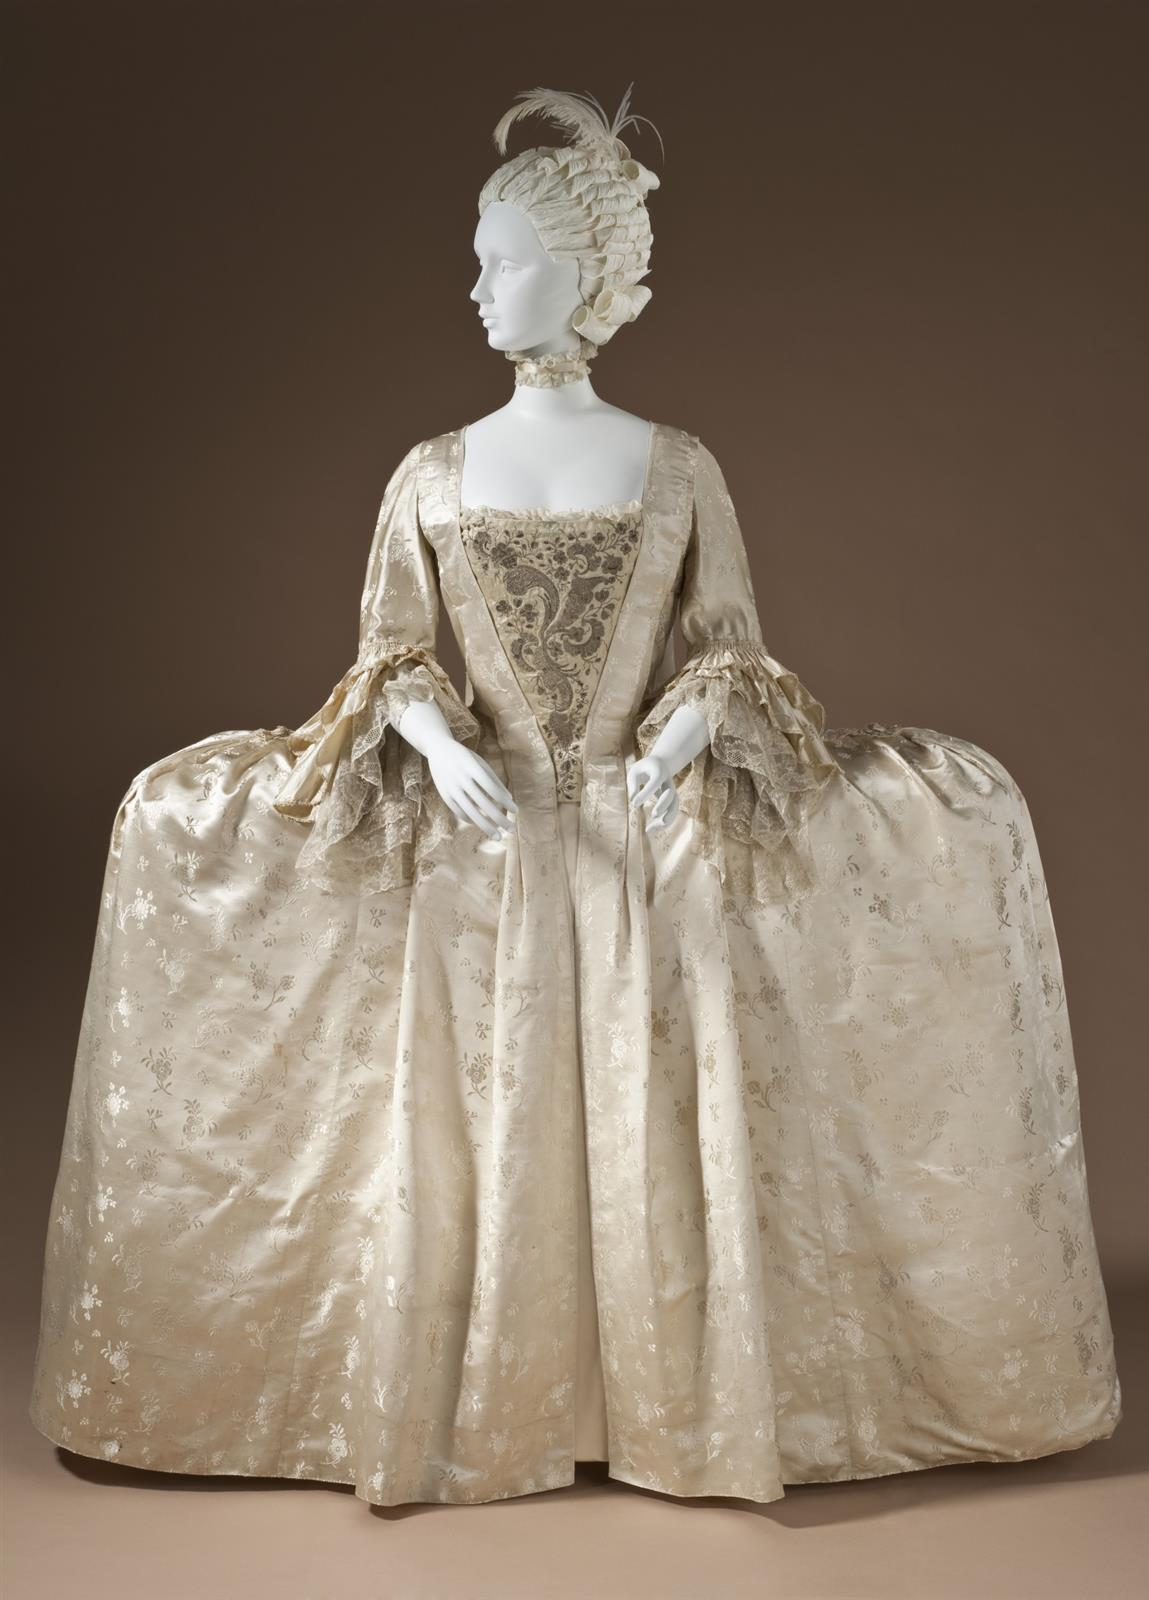 1765 Robe à la française. Silk satin with weft-float patterning and silk passementerie. LACMA